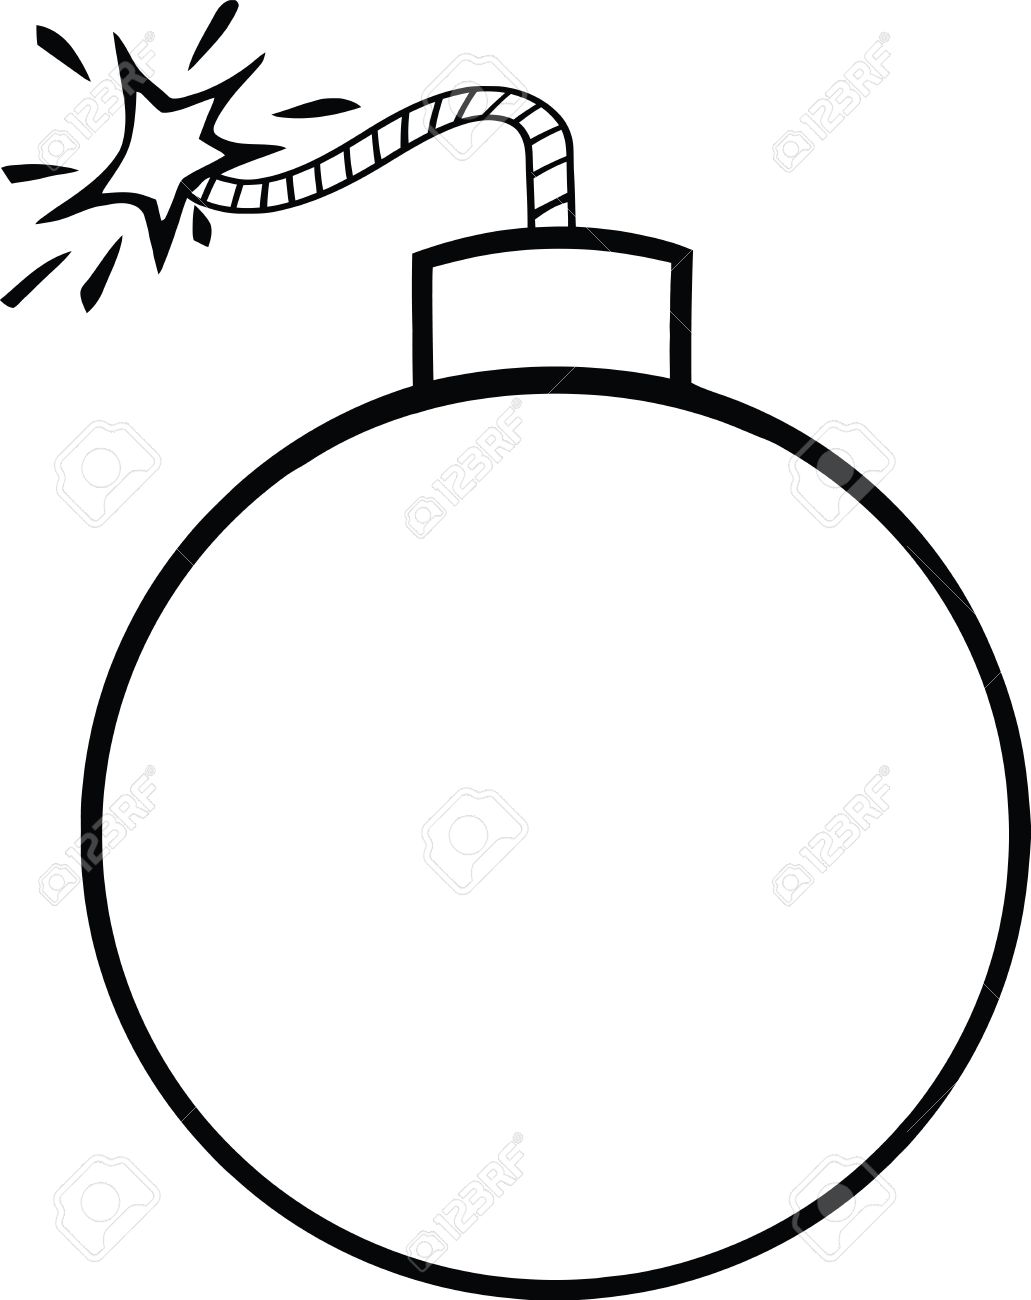 1031x1300 Black And White Cartoon Bomb With Lit Fuse Illustration Isolated